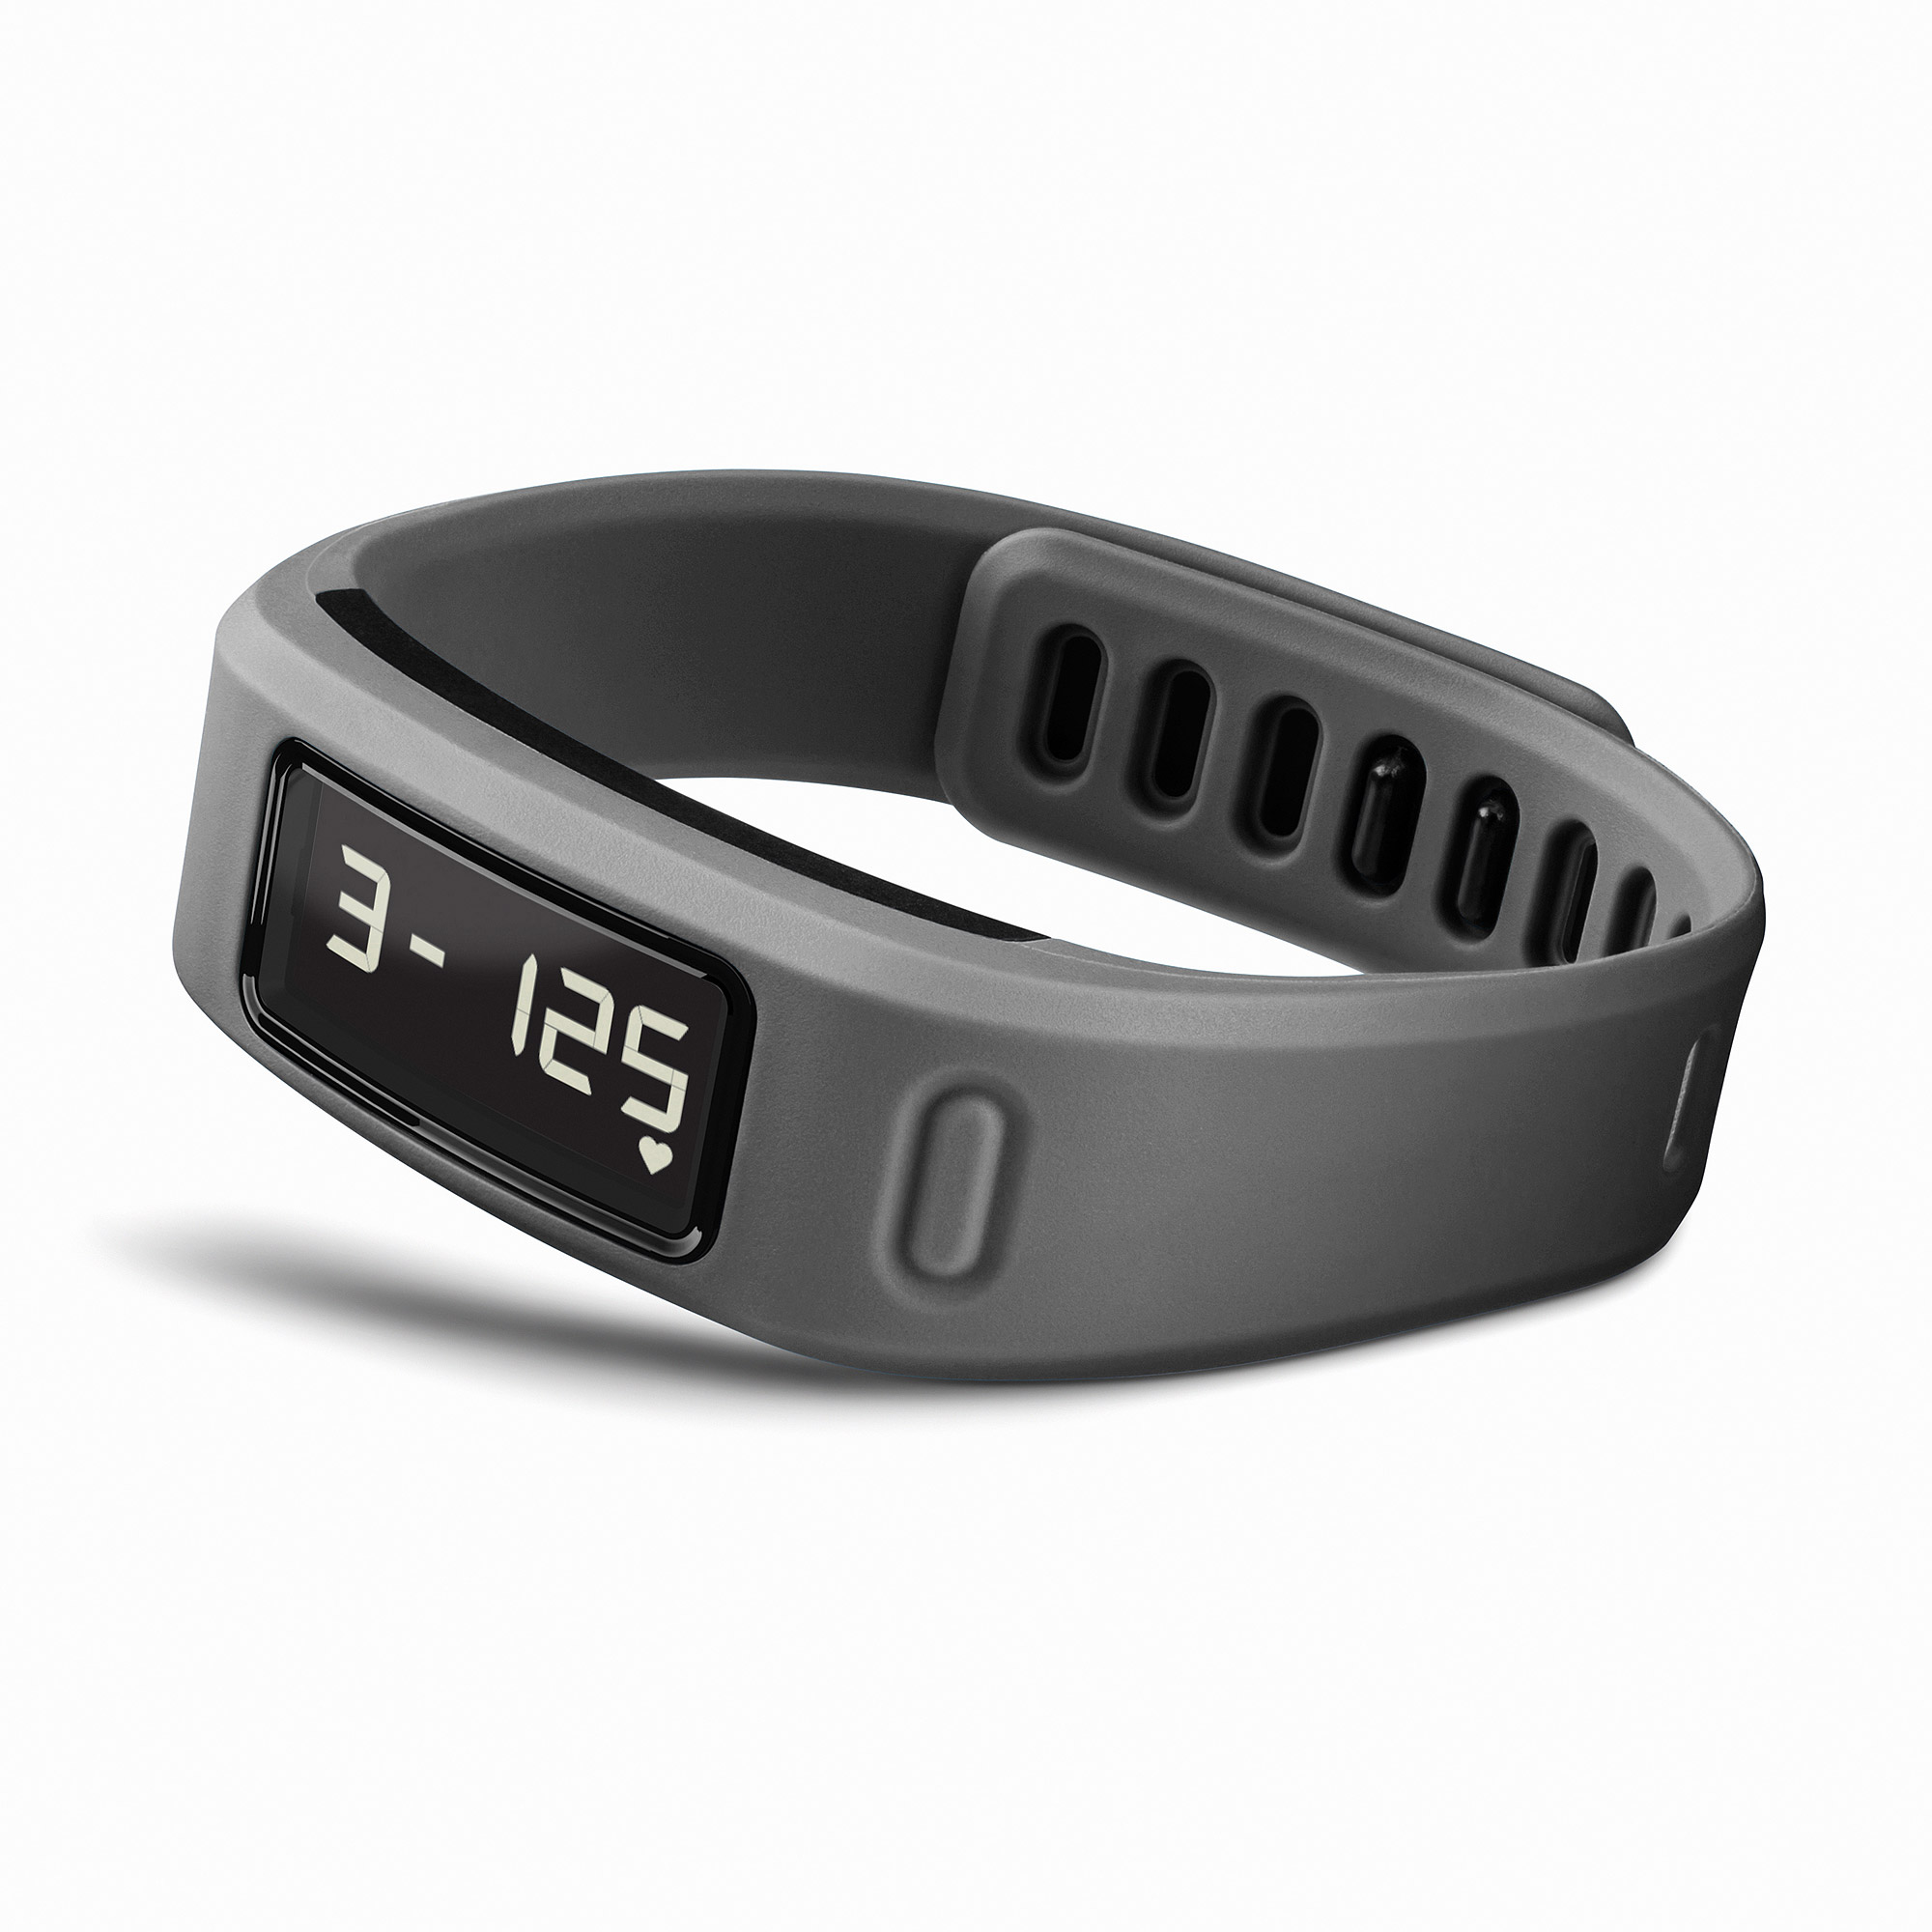 Garmin Vivofit Fitness Band Available In Multiple Colors Walmart